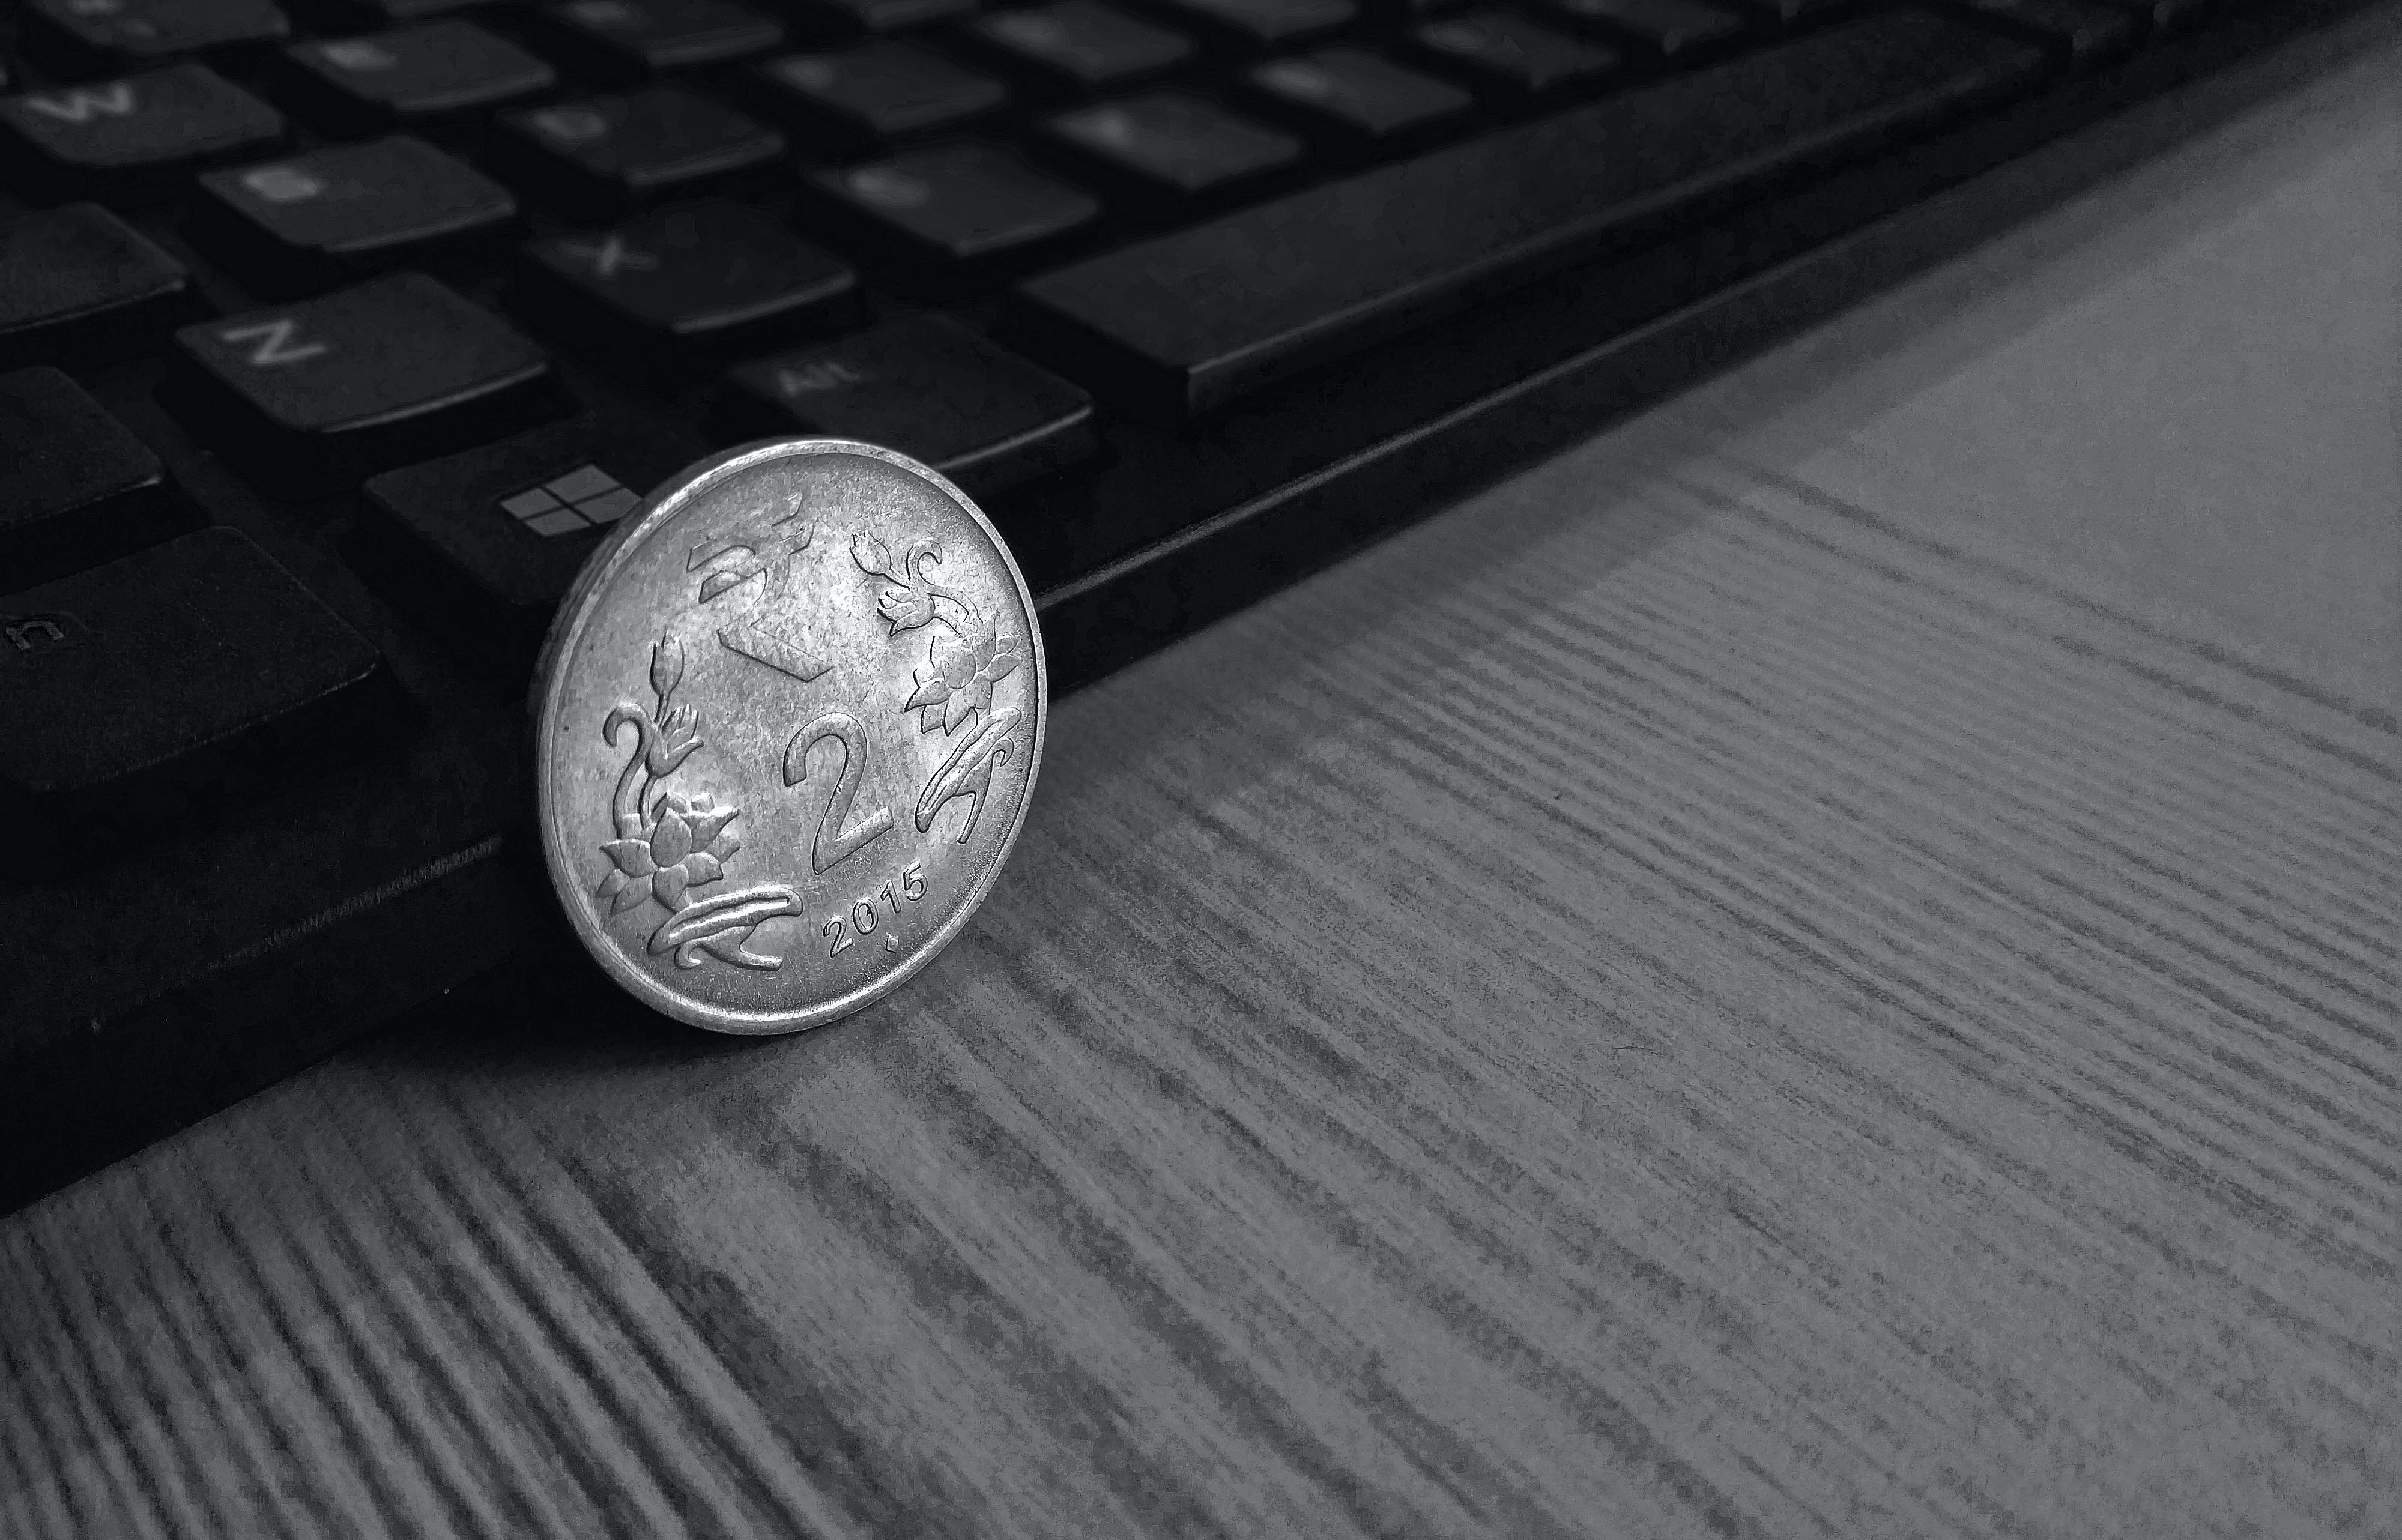 Free stock photo of 2 rupee, black and white, cash, coin